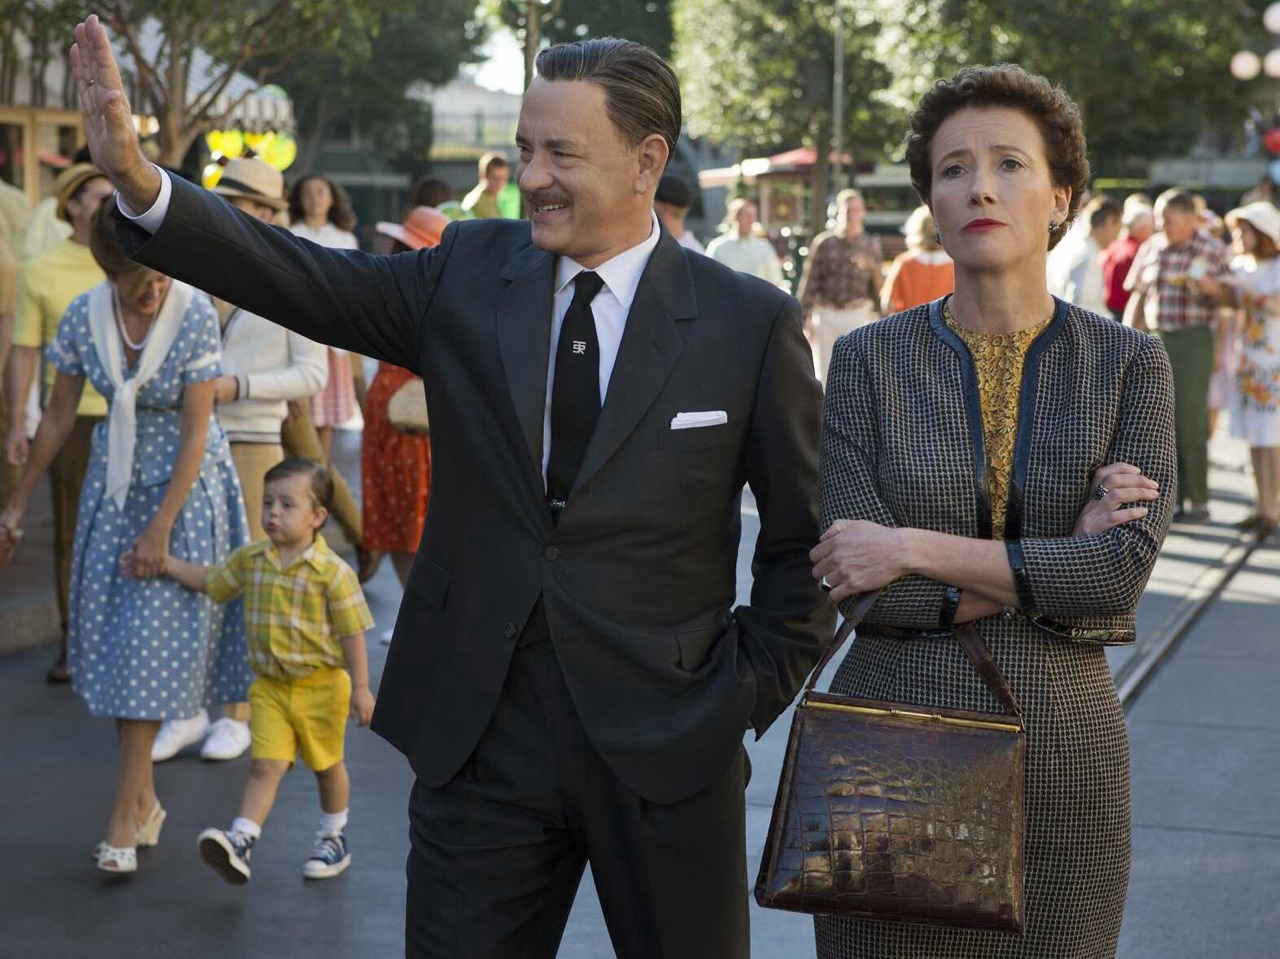 Saving Mr Banks (Film Review) 'Saving Mr Banks' tells the story of P.L. Travers (played by Emma Thompson), author of the novel 'Mary Poppins'. Legendary filmmaker Walt Disney (played by Tom Hanks) pulls out all the stops to get Travers to sign over the rights to adapt the story for a feature film. With the royalties from sales of the book dwindling to point that she won't be able to keep her house, Travers reluctantly agrees to spend two weeks at Disney's studios in California discussing ideas and plans for the adaptation. The character of P.L Travers at first glance is a difficult pill to take. Travers is a very demanding individual, asking for every meeting to be recorded on tape and at one point for the colour red to be completely removed from the film. Stubborn, distant and very little patience for tomfoolery, Disney has met his match especially considering the talks of making the adaptation started 20 years prior. The story at key points goes right back into Travers' childhood, showing how her past has formed her personality and the powerful bond to her literary creation. Slowly over time, you begin to understand why Travers acts the way she does and wonder what lengths Disney and his employees will go to get her on their side. I quite liked the subtle references to all things Disney with the classic musical themes hidden in the score to the many sightings of well-loved animated characters throughout the film. The 1960s style made famous by recent shows such as Mad Men, is prominent here, showcased in it's music and costuming, even showing off the Disneyland theme park just like how it was during that era. Featuring a stellar cast including Colin Farrell, Bradley Whitford and Paul Giamatti, this film is sure to inspire the fun-loving child in all of us.